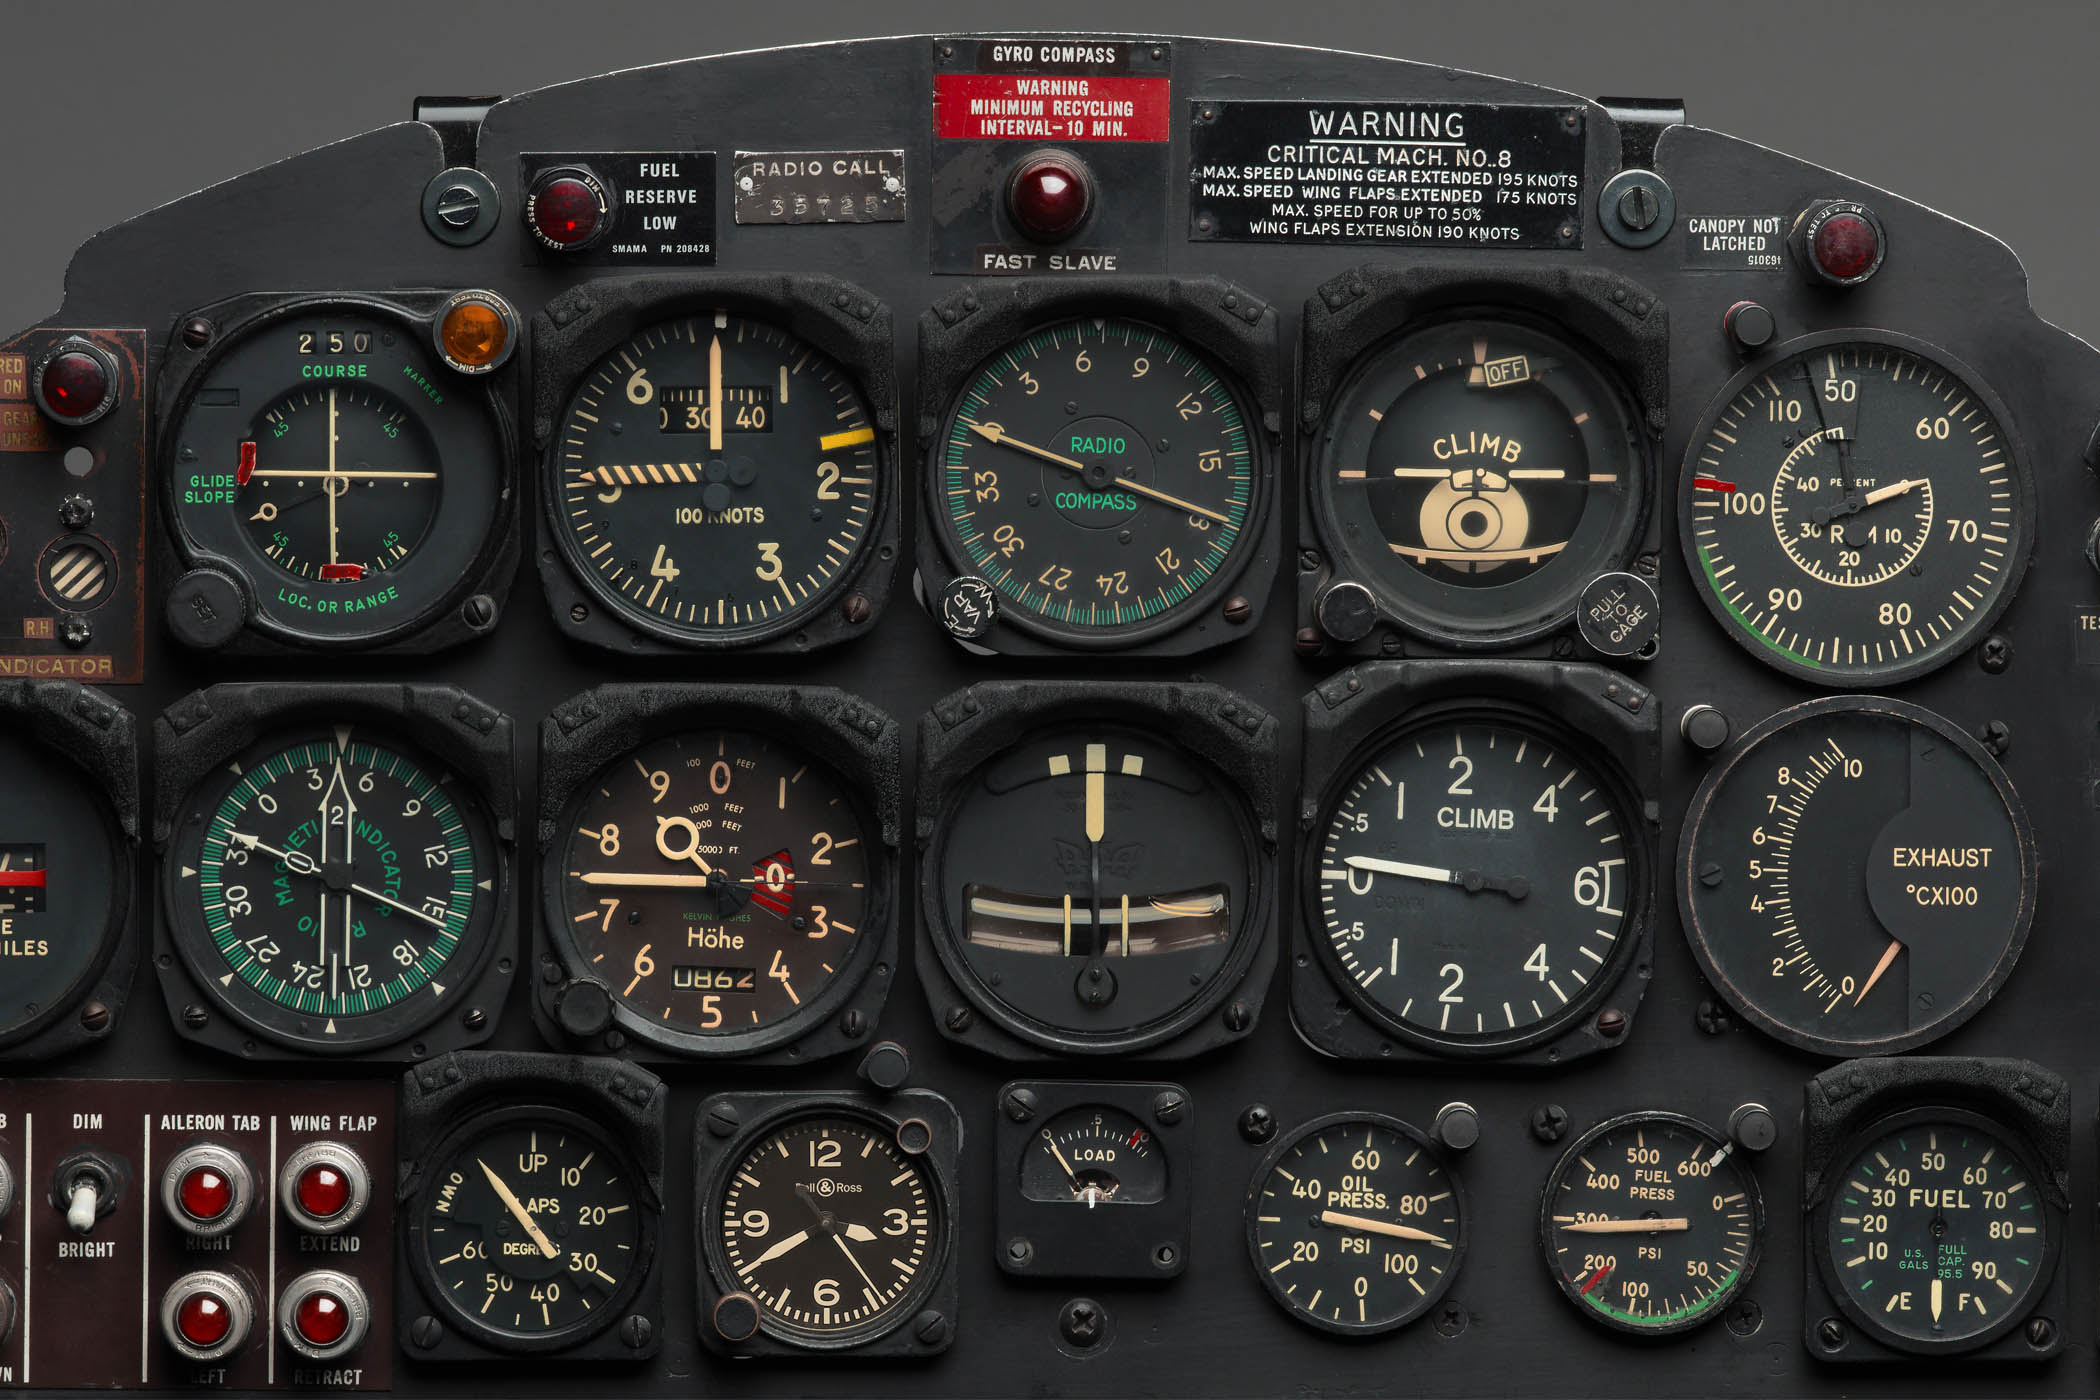 Bell and Ross instruement collection - 1